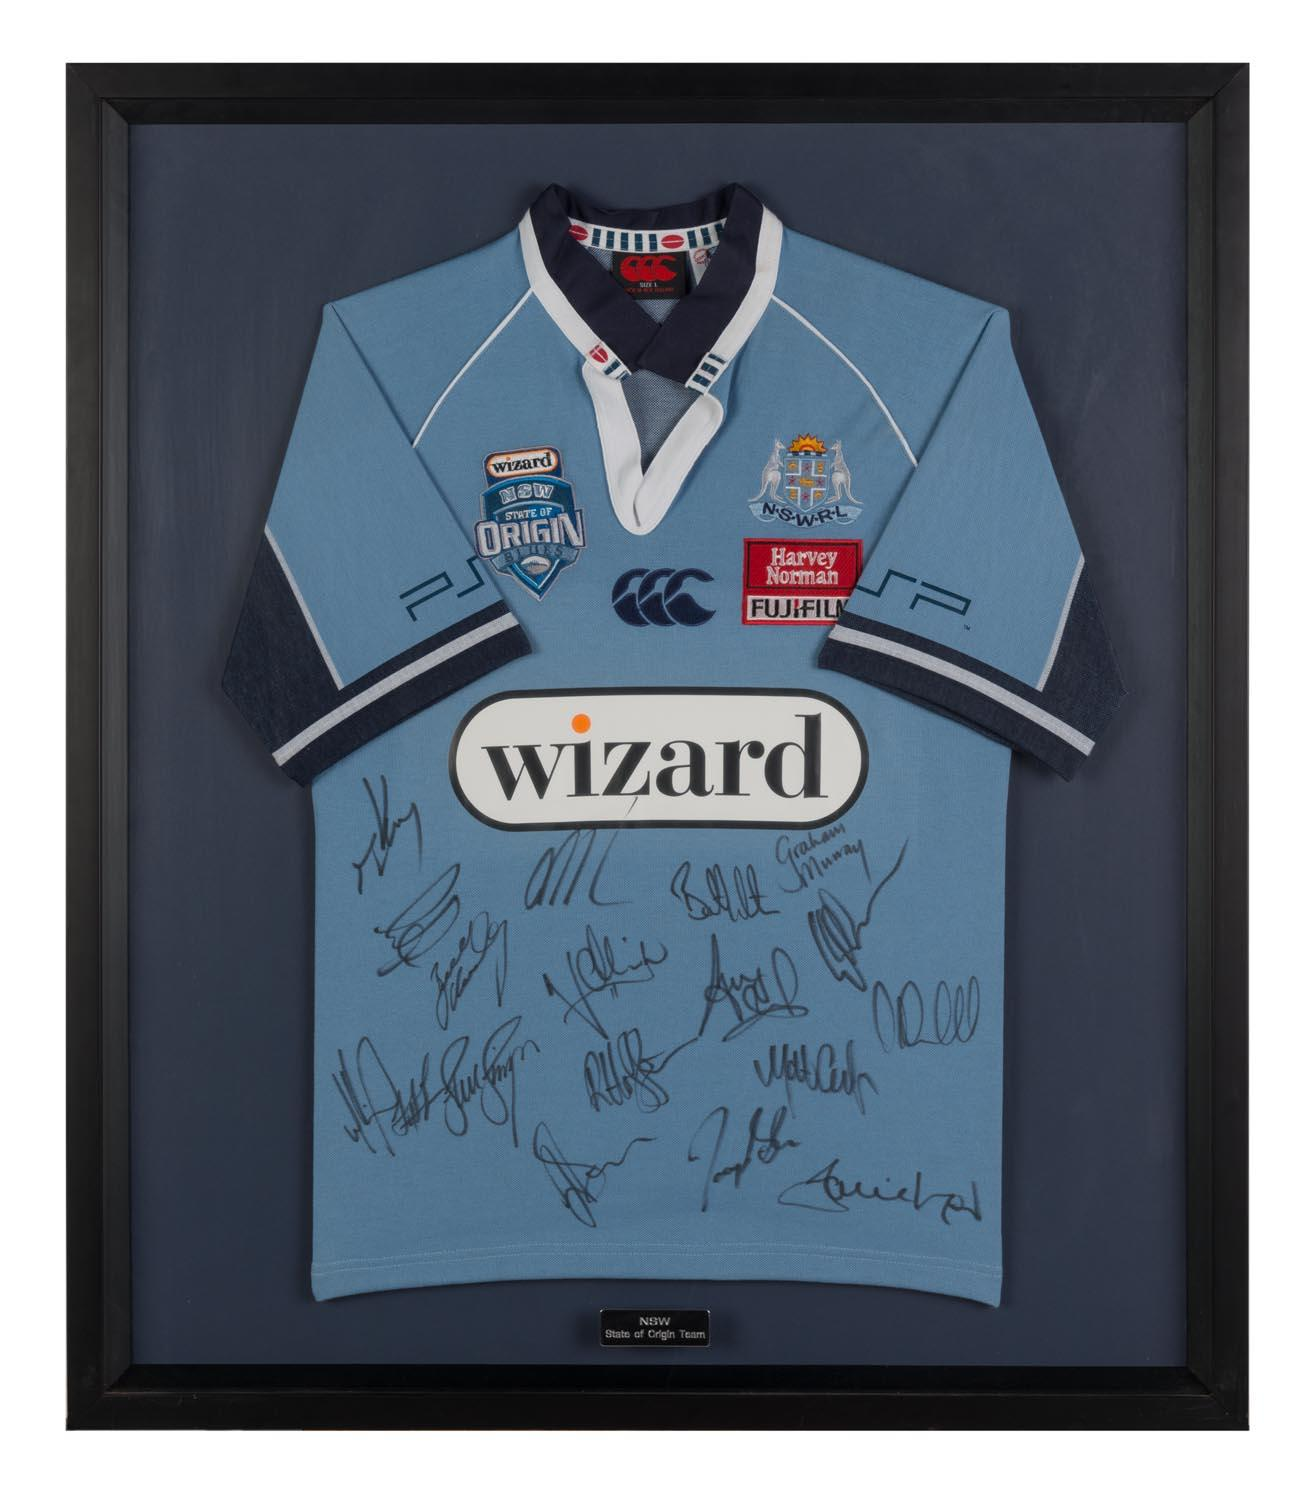 NSW 2006 State of Origin Team & Coach Signed Jersey, Framed